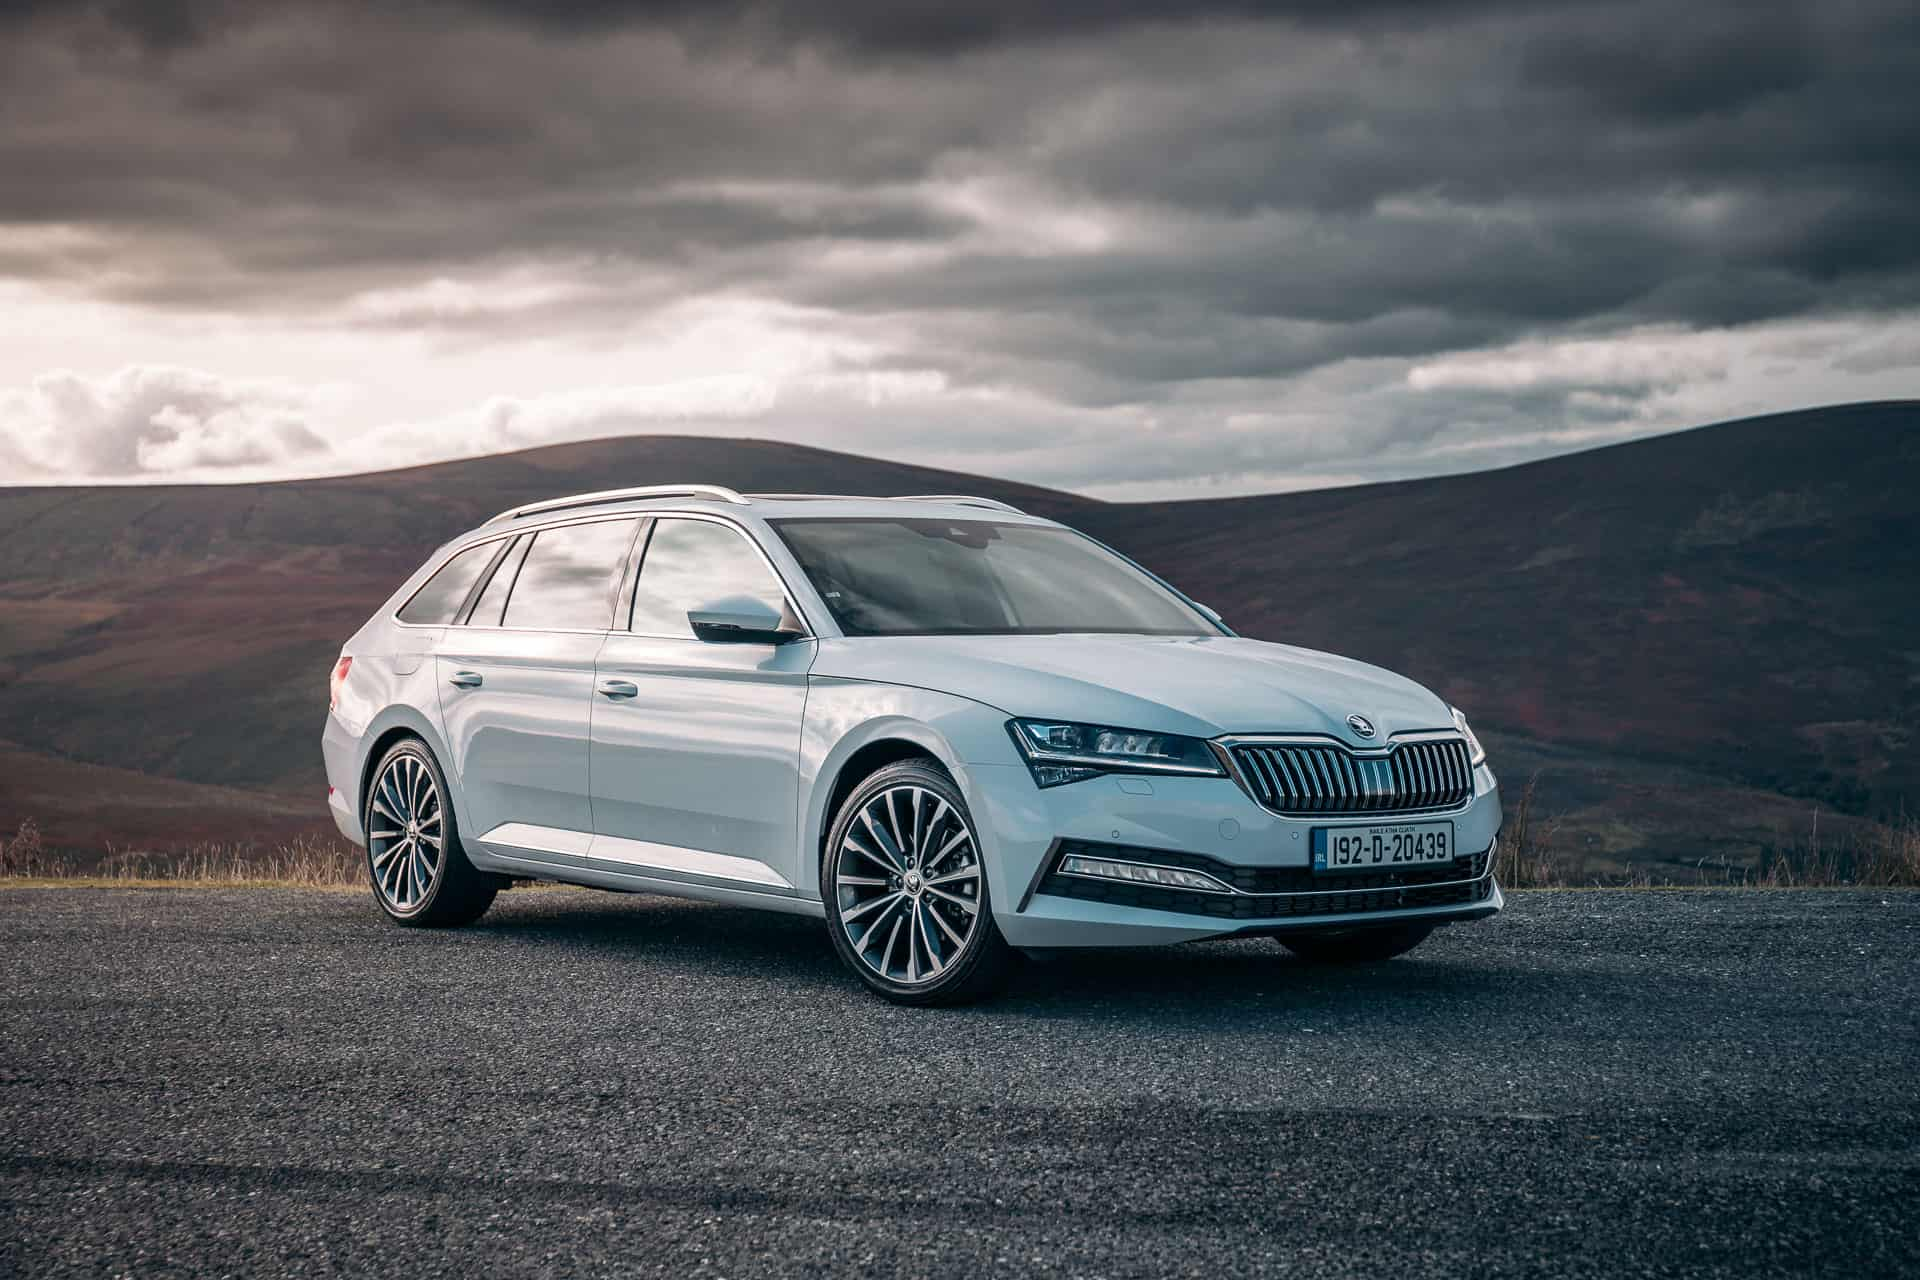 New Škoda Superb Kombi